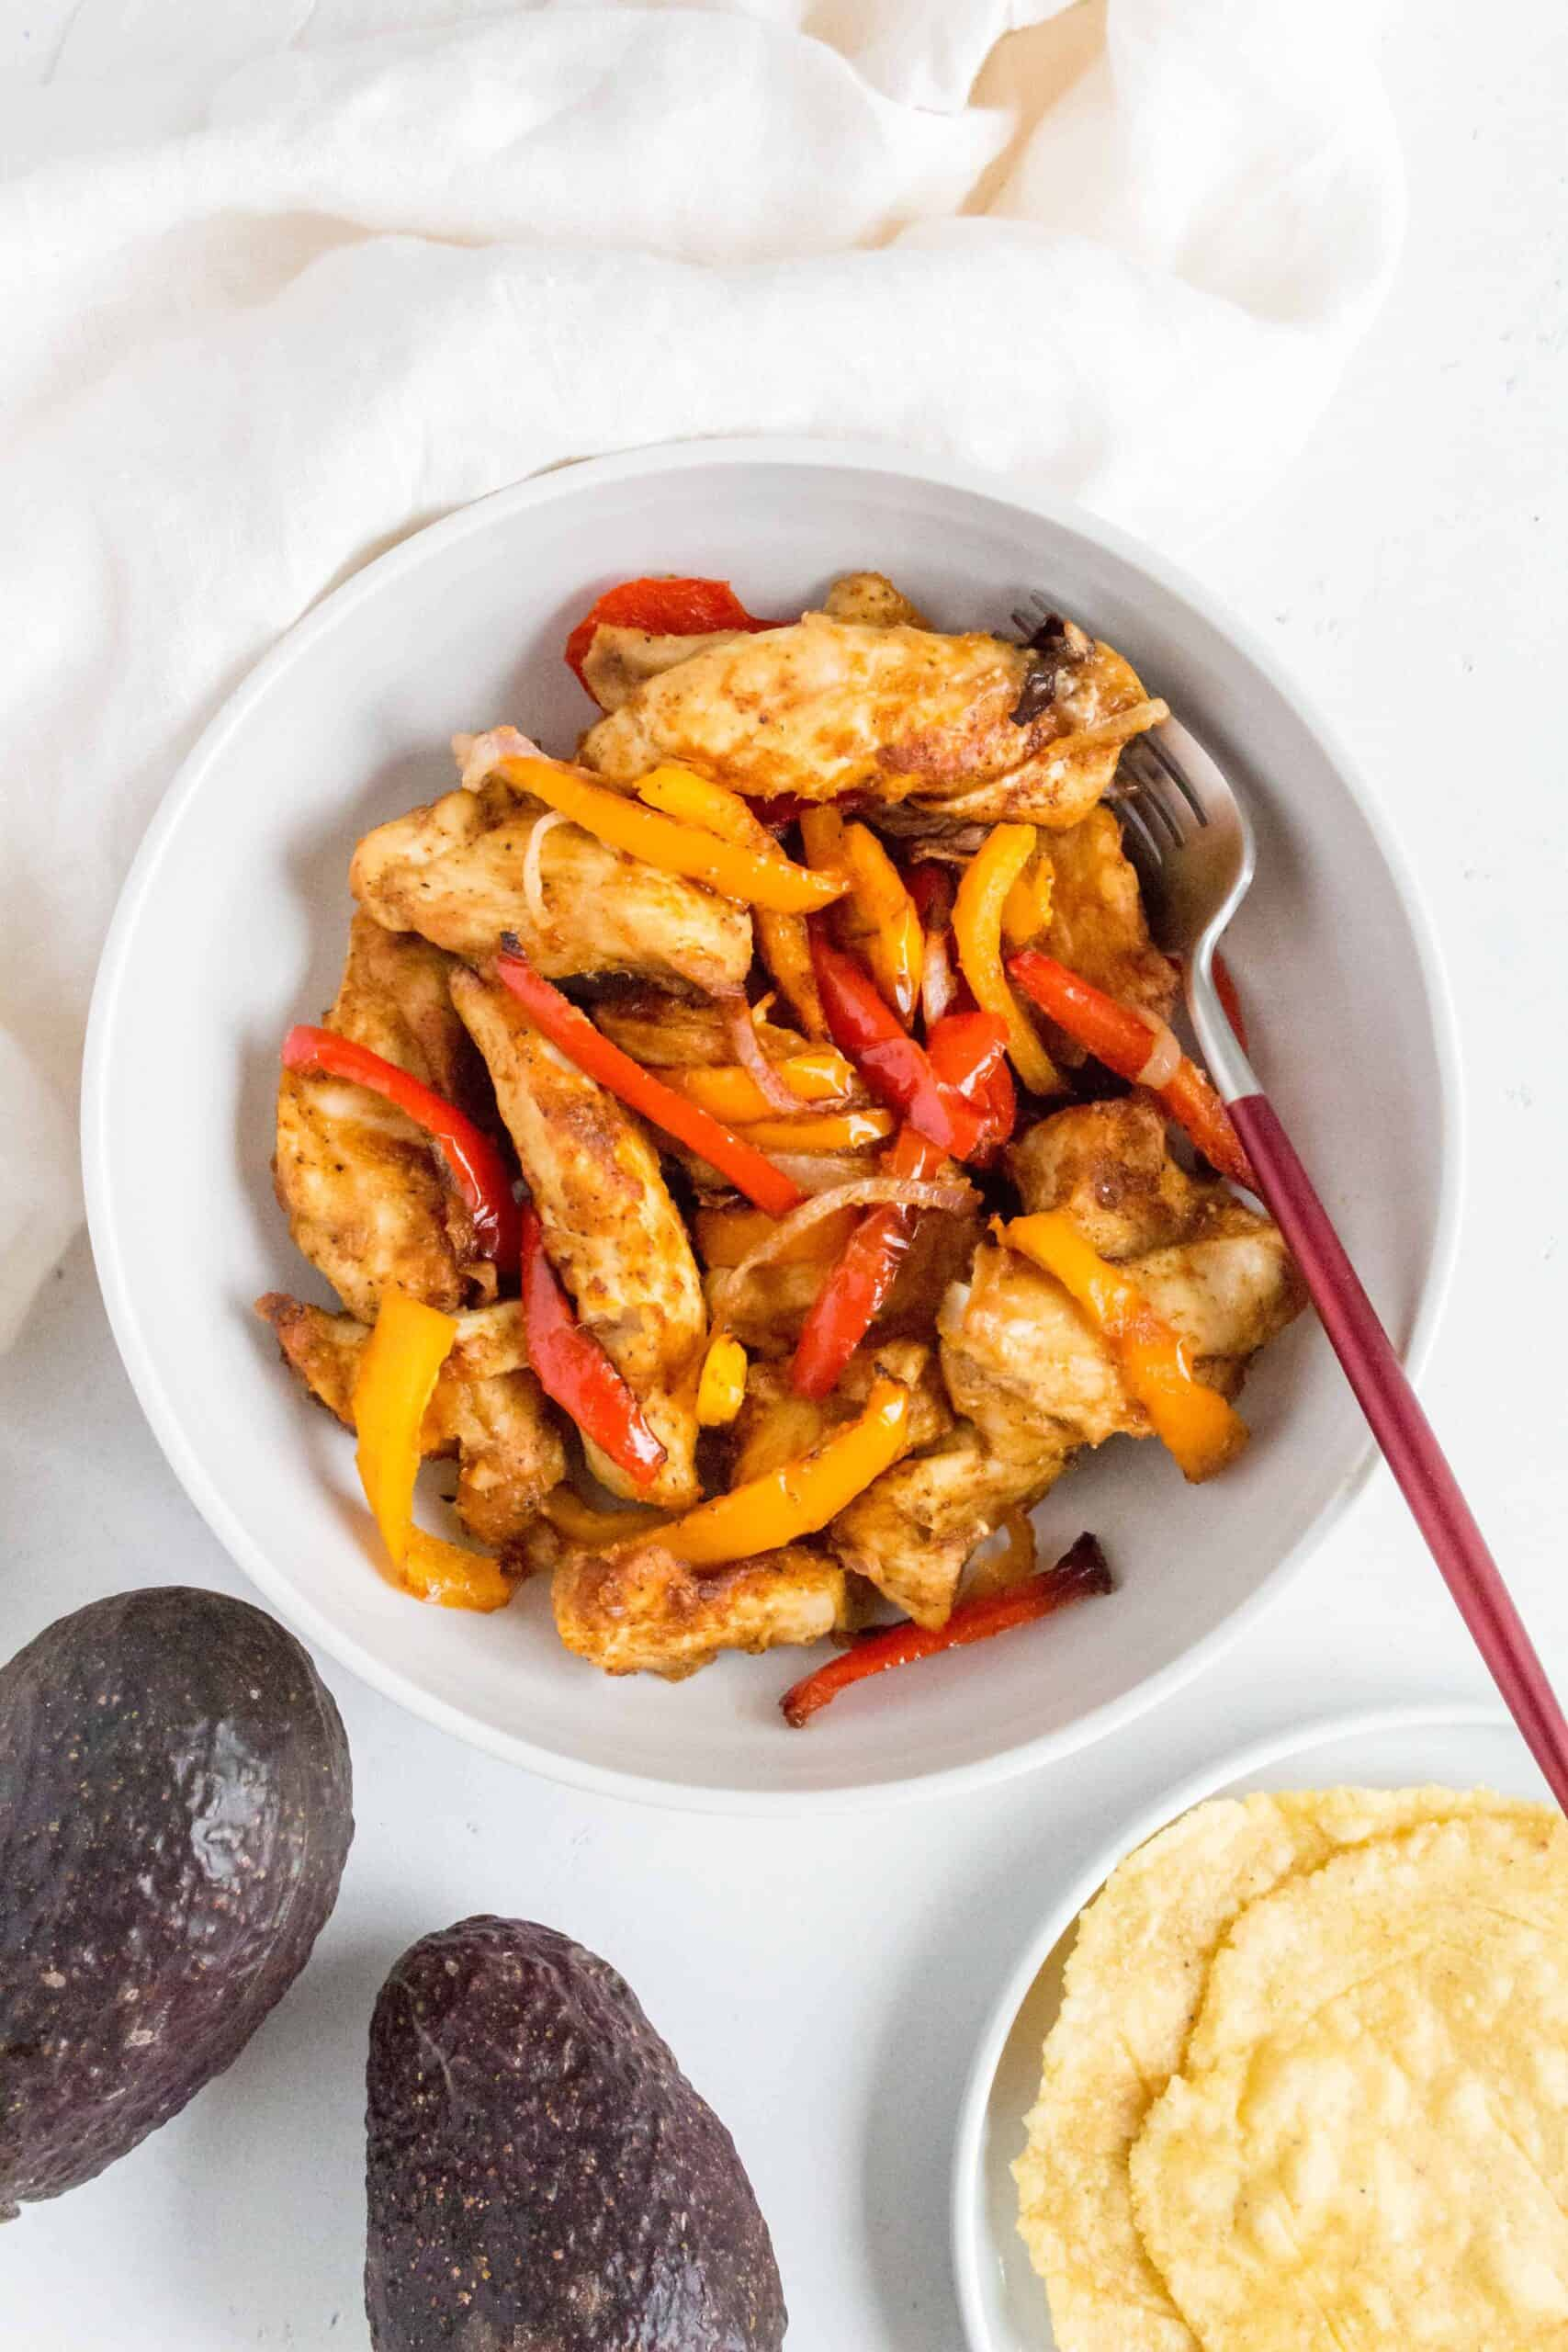 Have dinner ready on the table in less than 30 minutes with this quick and healthy Air Fryer Chicken Fajitas!